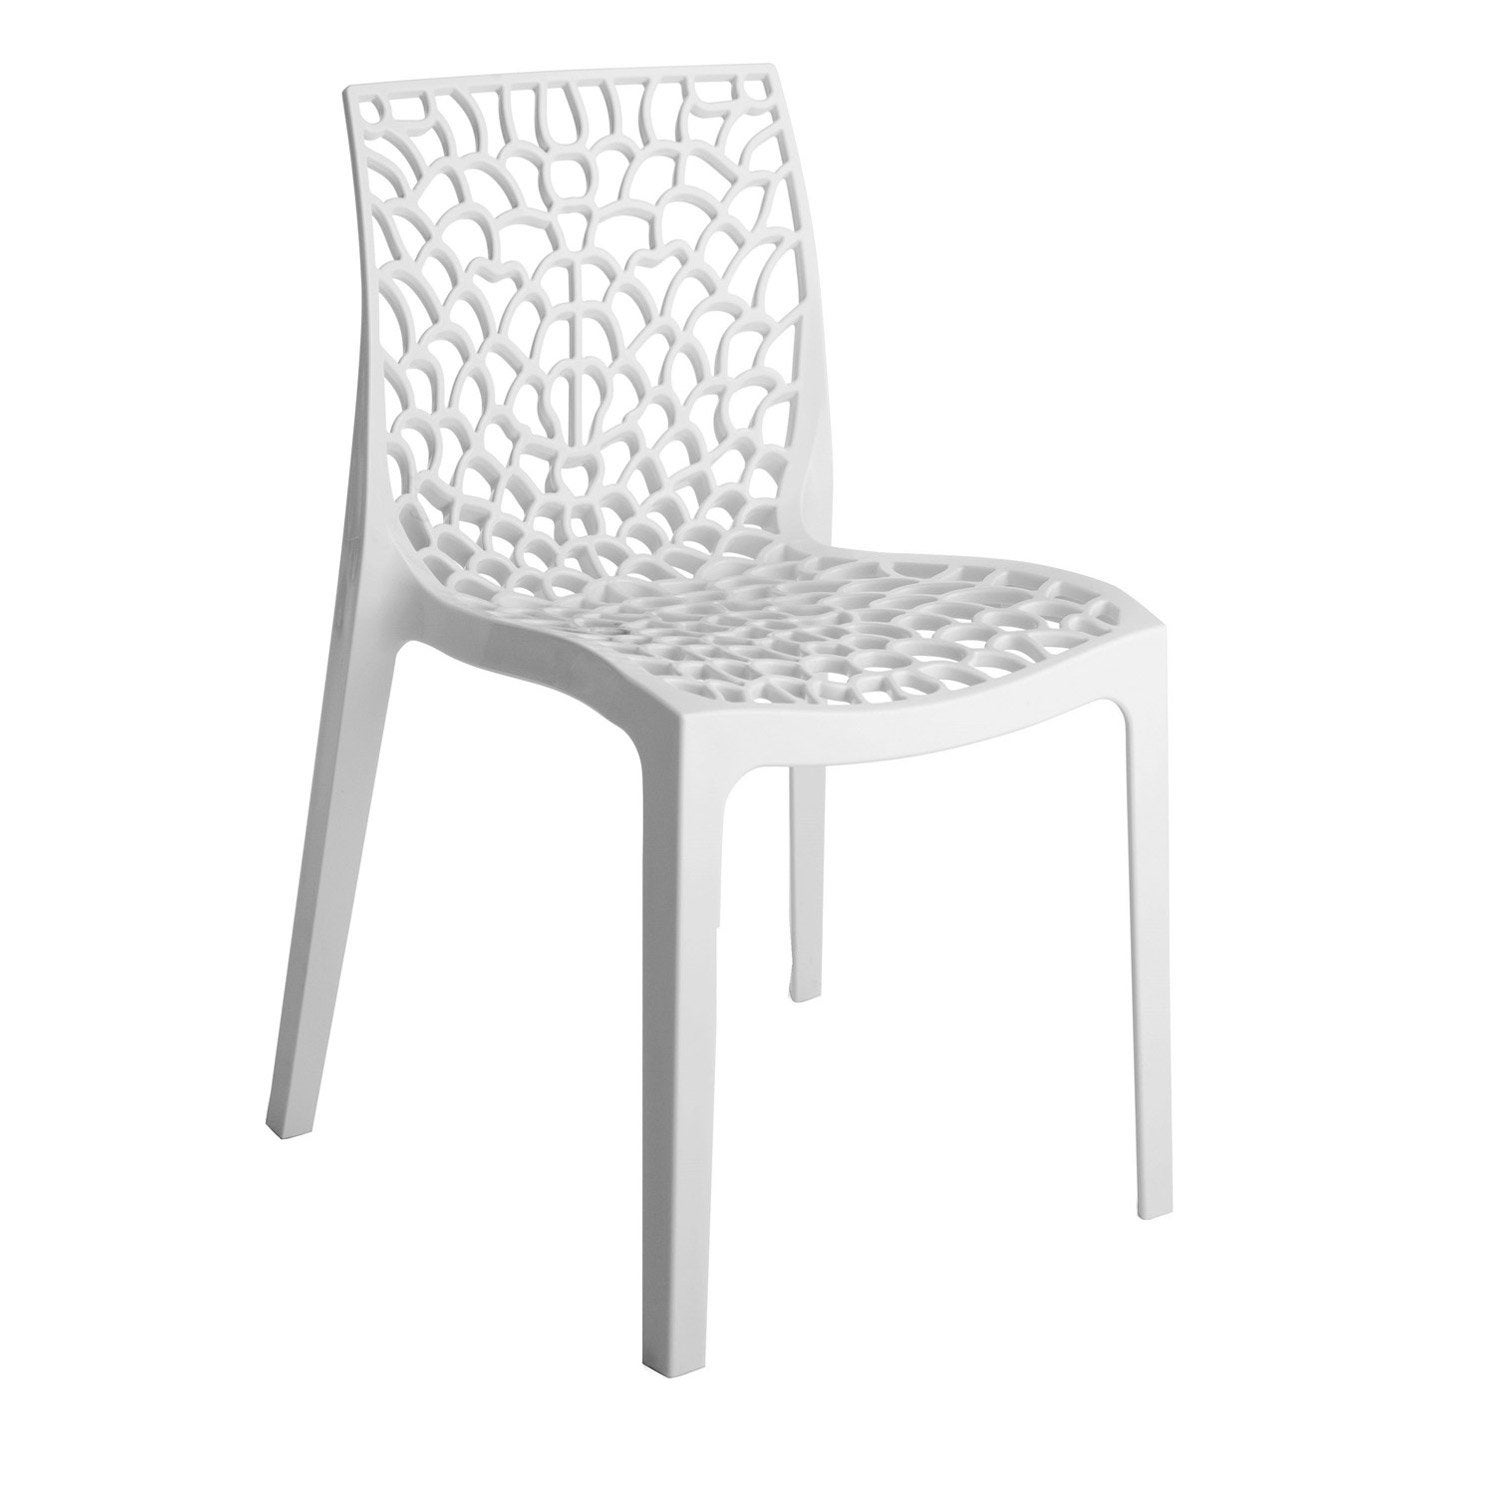 Chaise de jardin en r sine grafik blanc leroy merlin for Chaise blanches